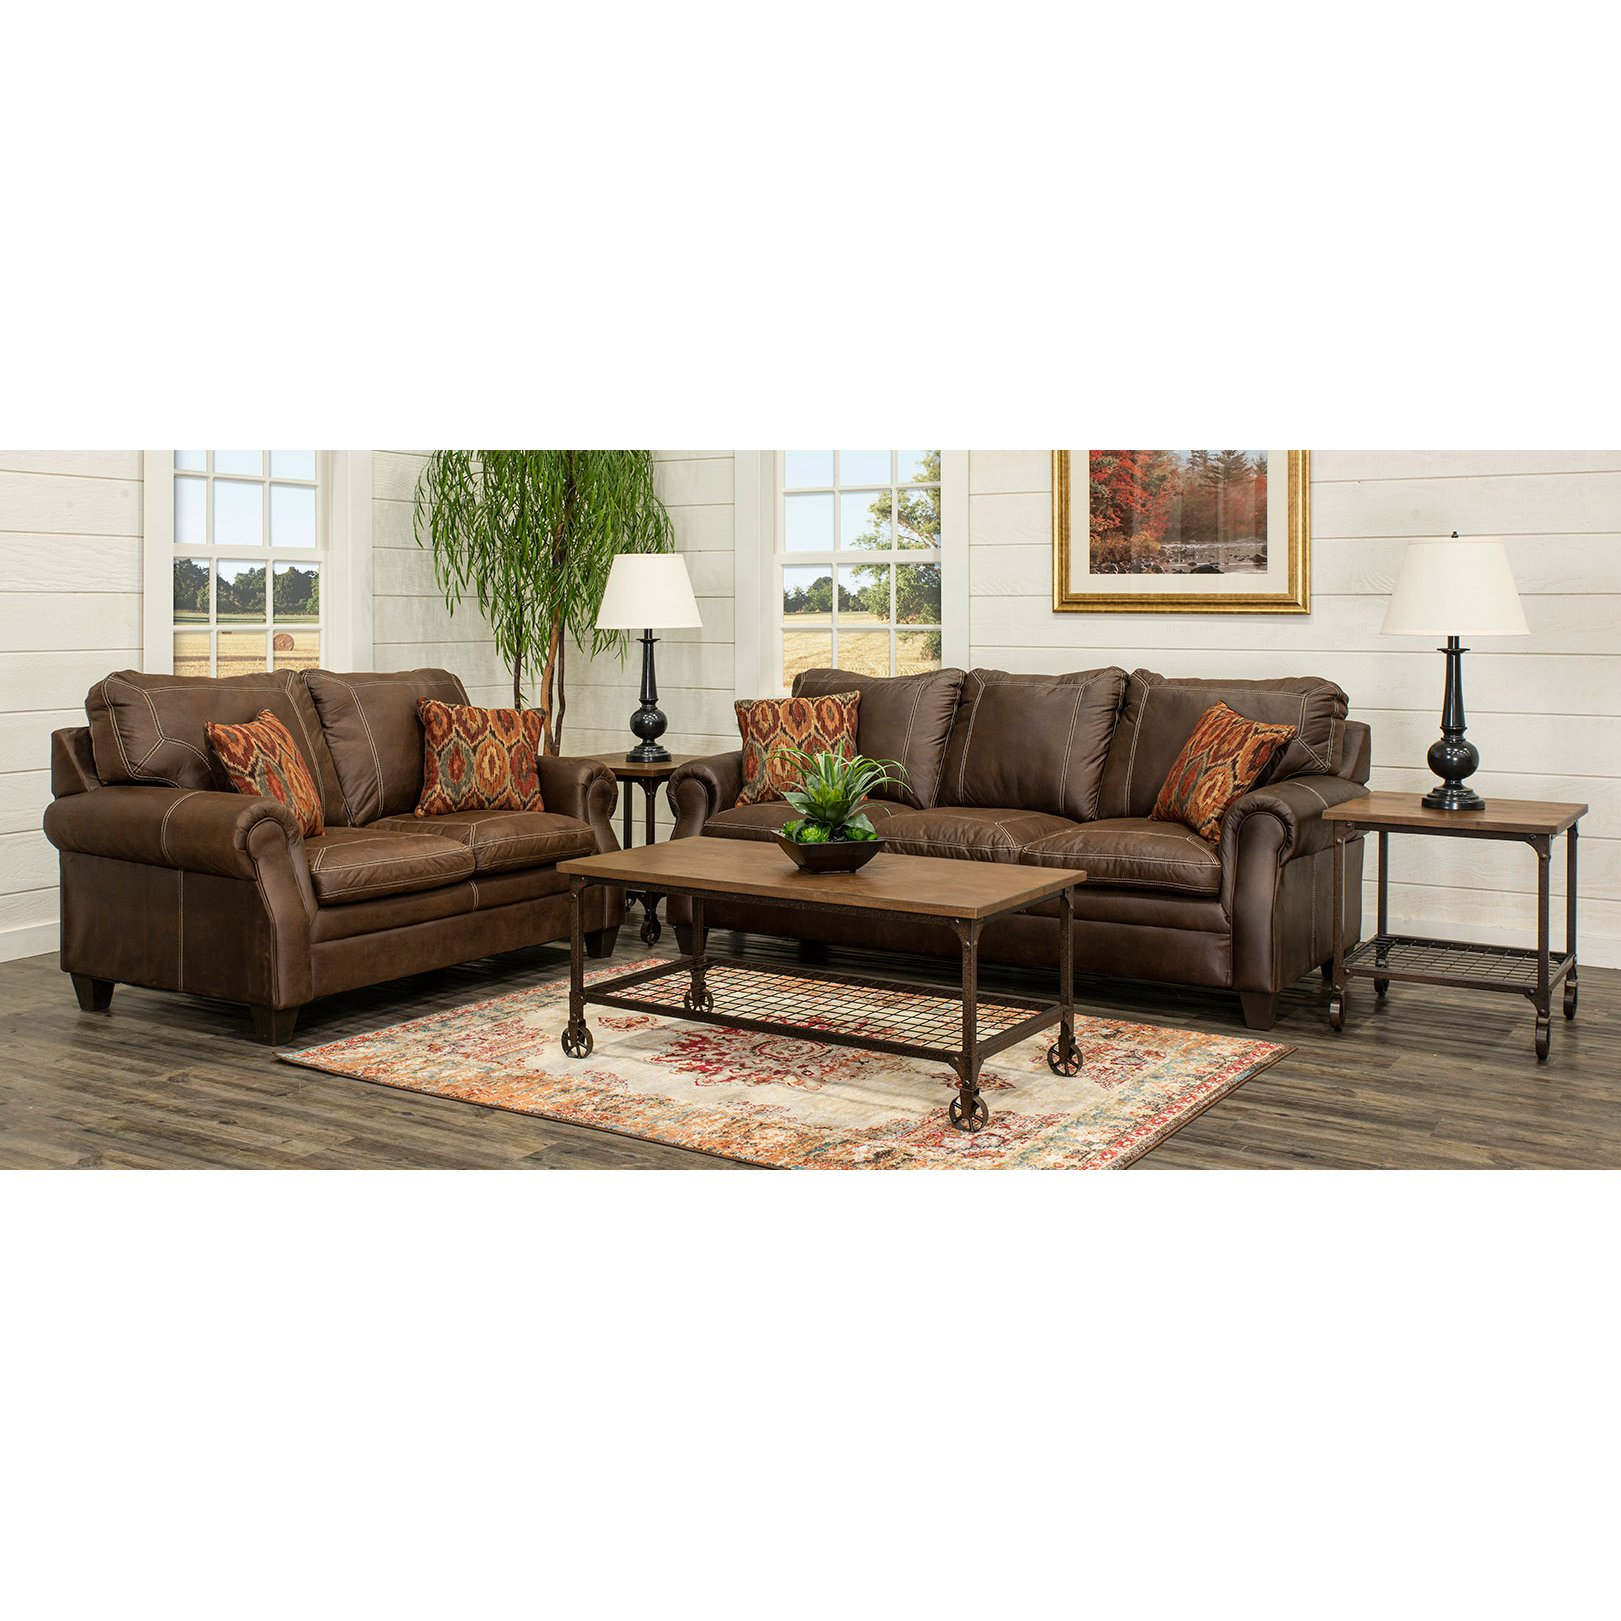 7 piece living room package fixtures classic traditional brown set shiloh rc willey furniture store